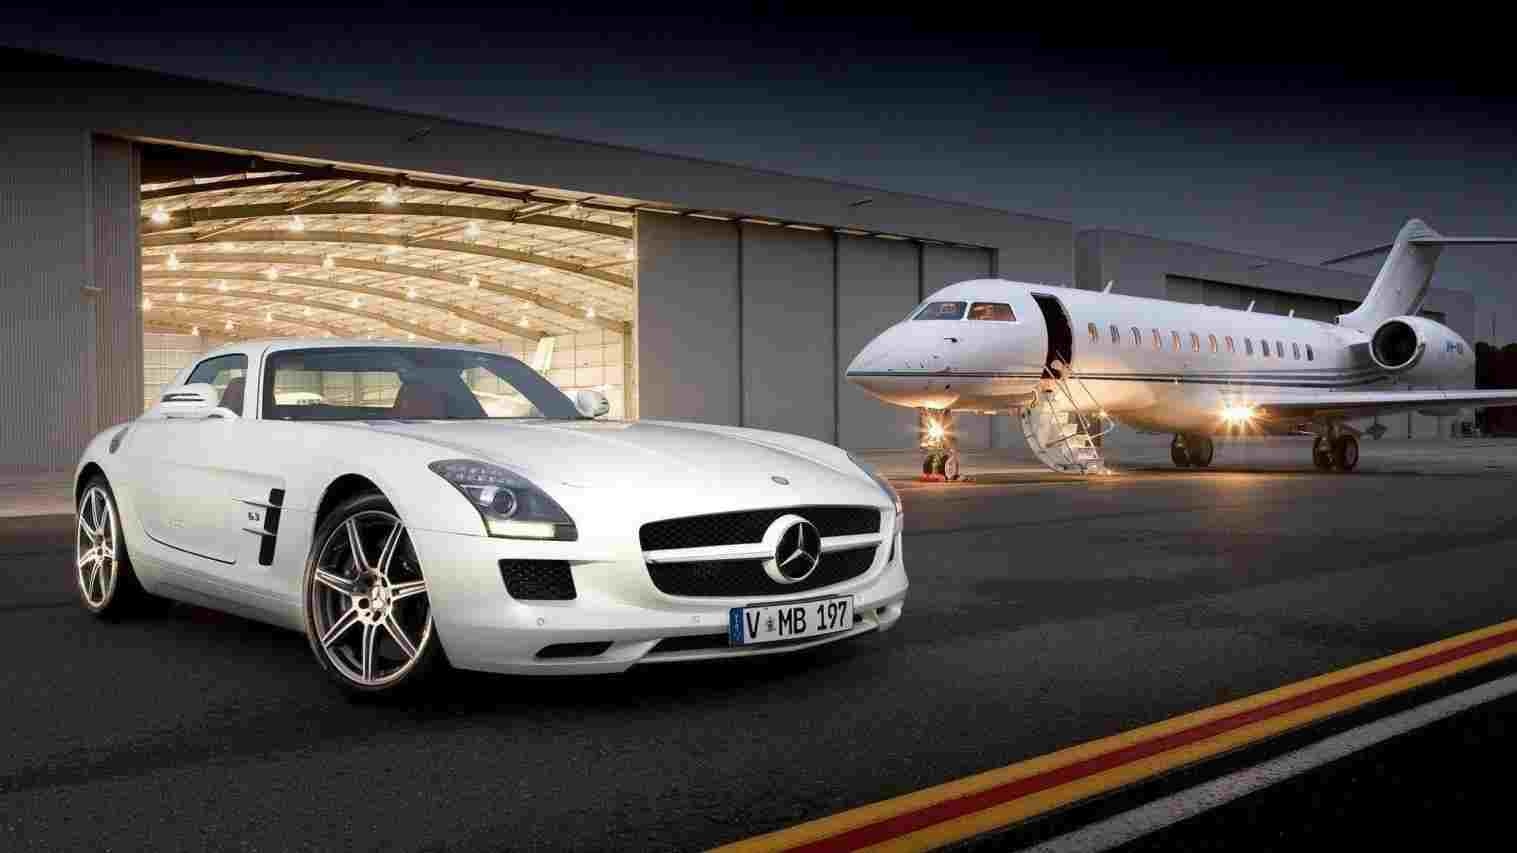 Billionaire Luxury Lifestyle Wallpaper Iphone Private Jet